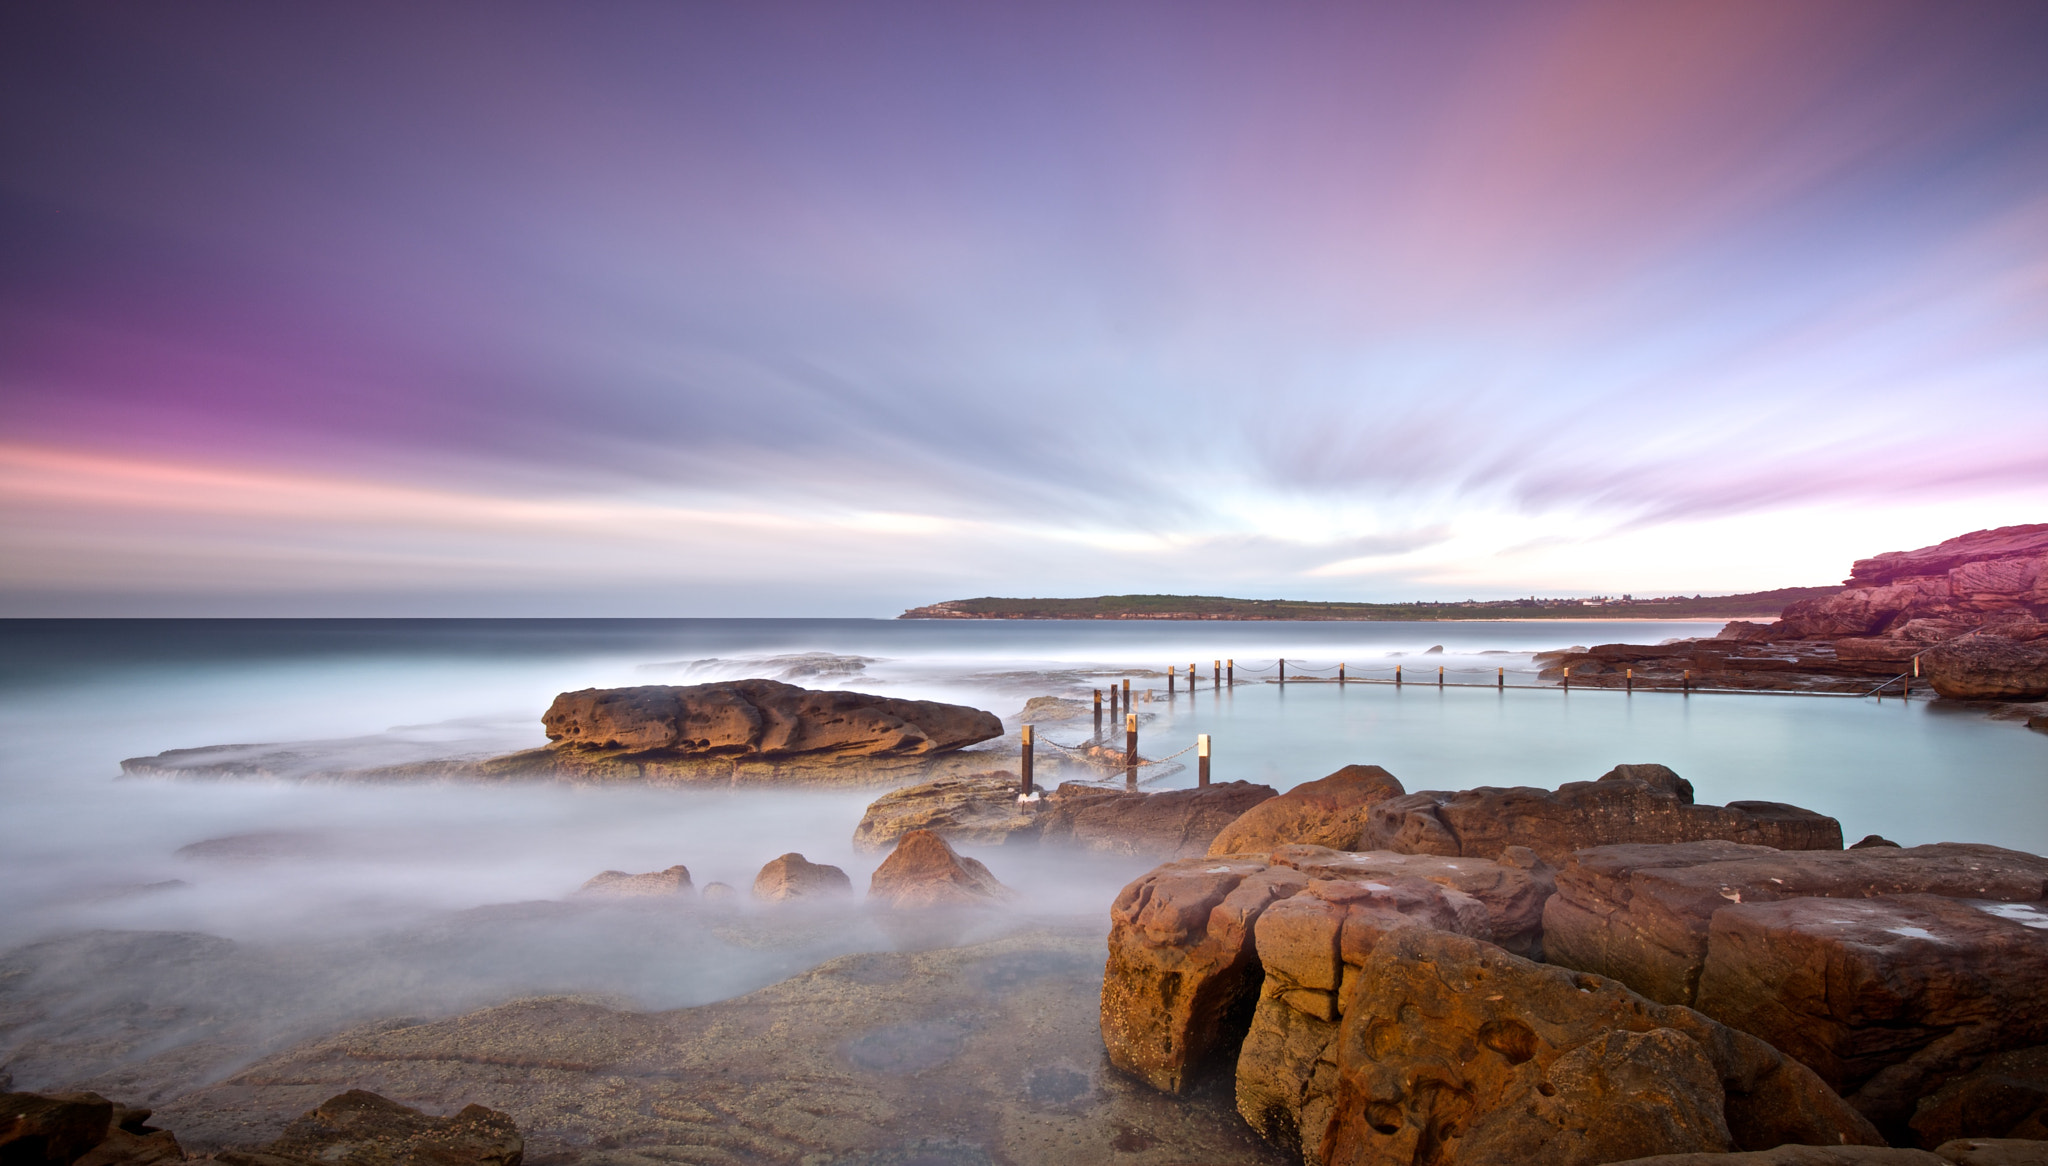 Photograph Maroubra  by donald Goldney on 500px